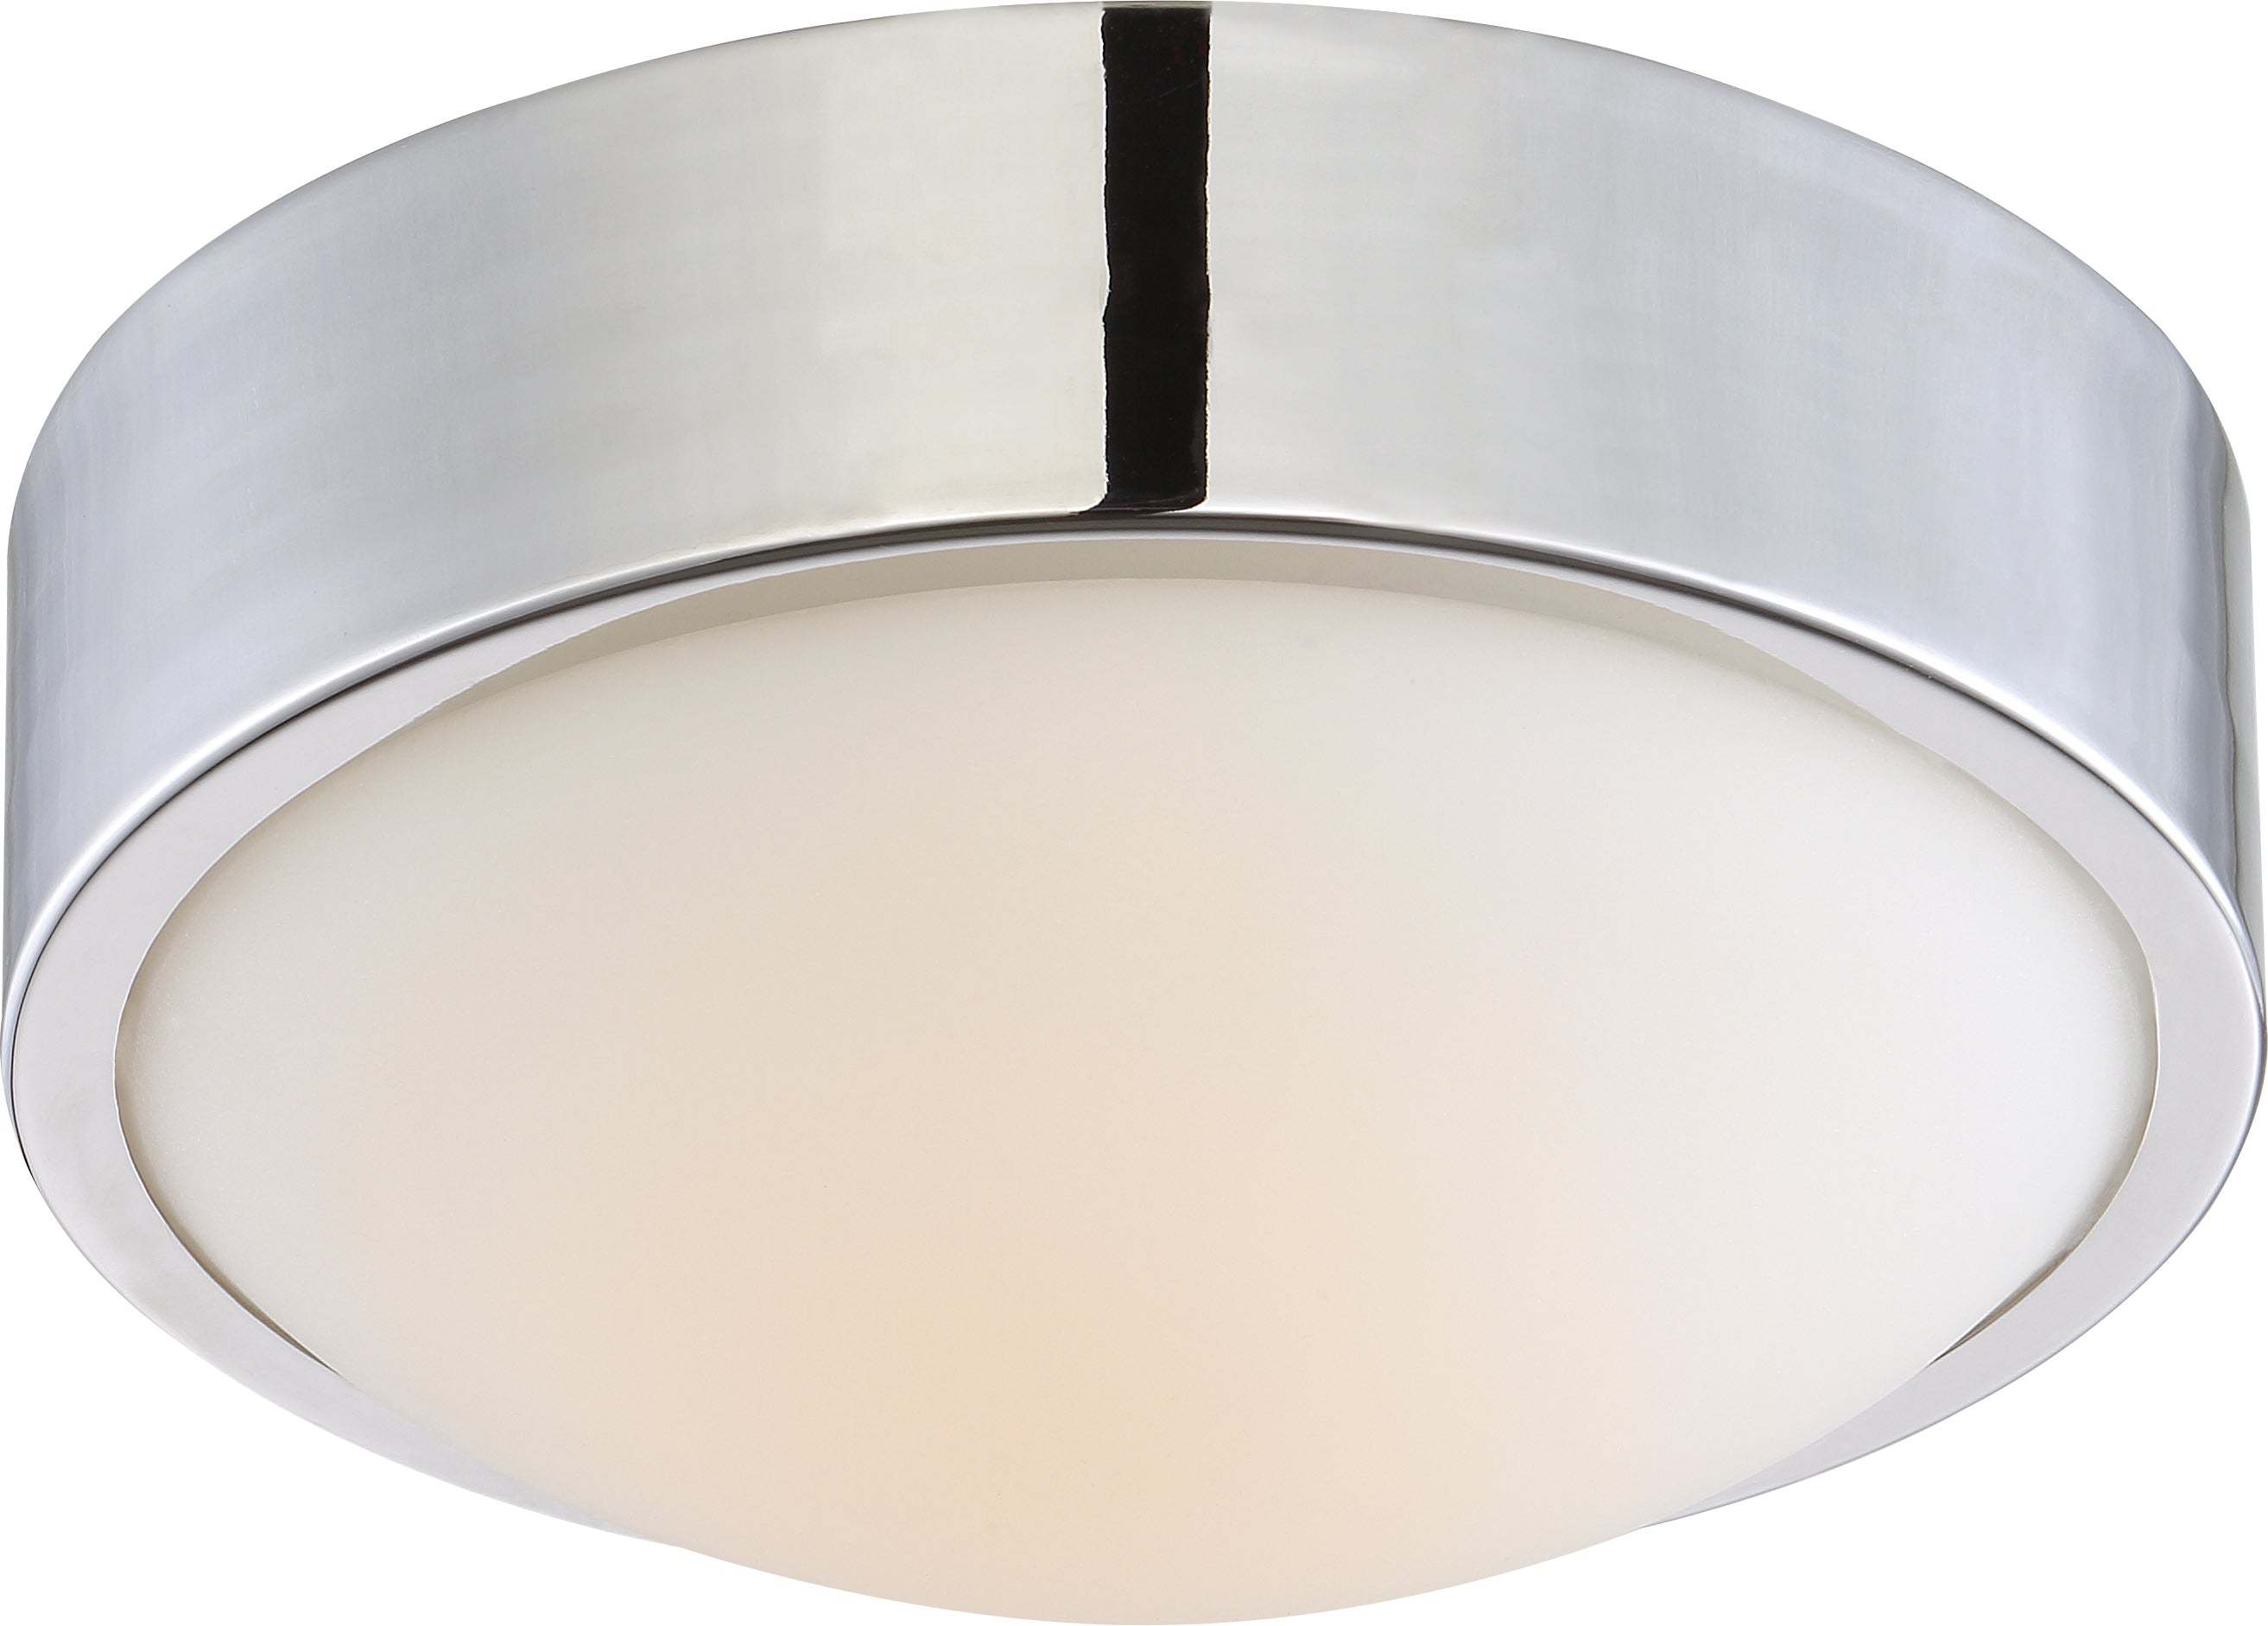 "Nuvo Perk 9"" LED Flush Mount Fixture w/ White Glass in Polished Nickel Finish"